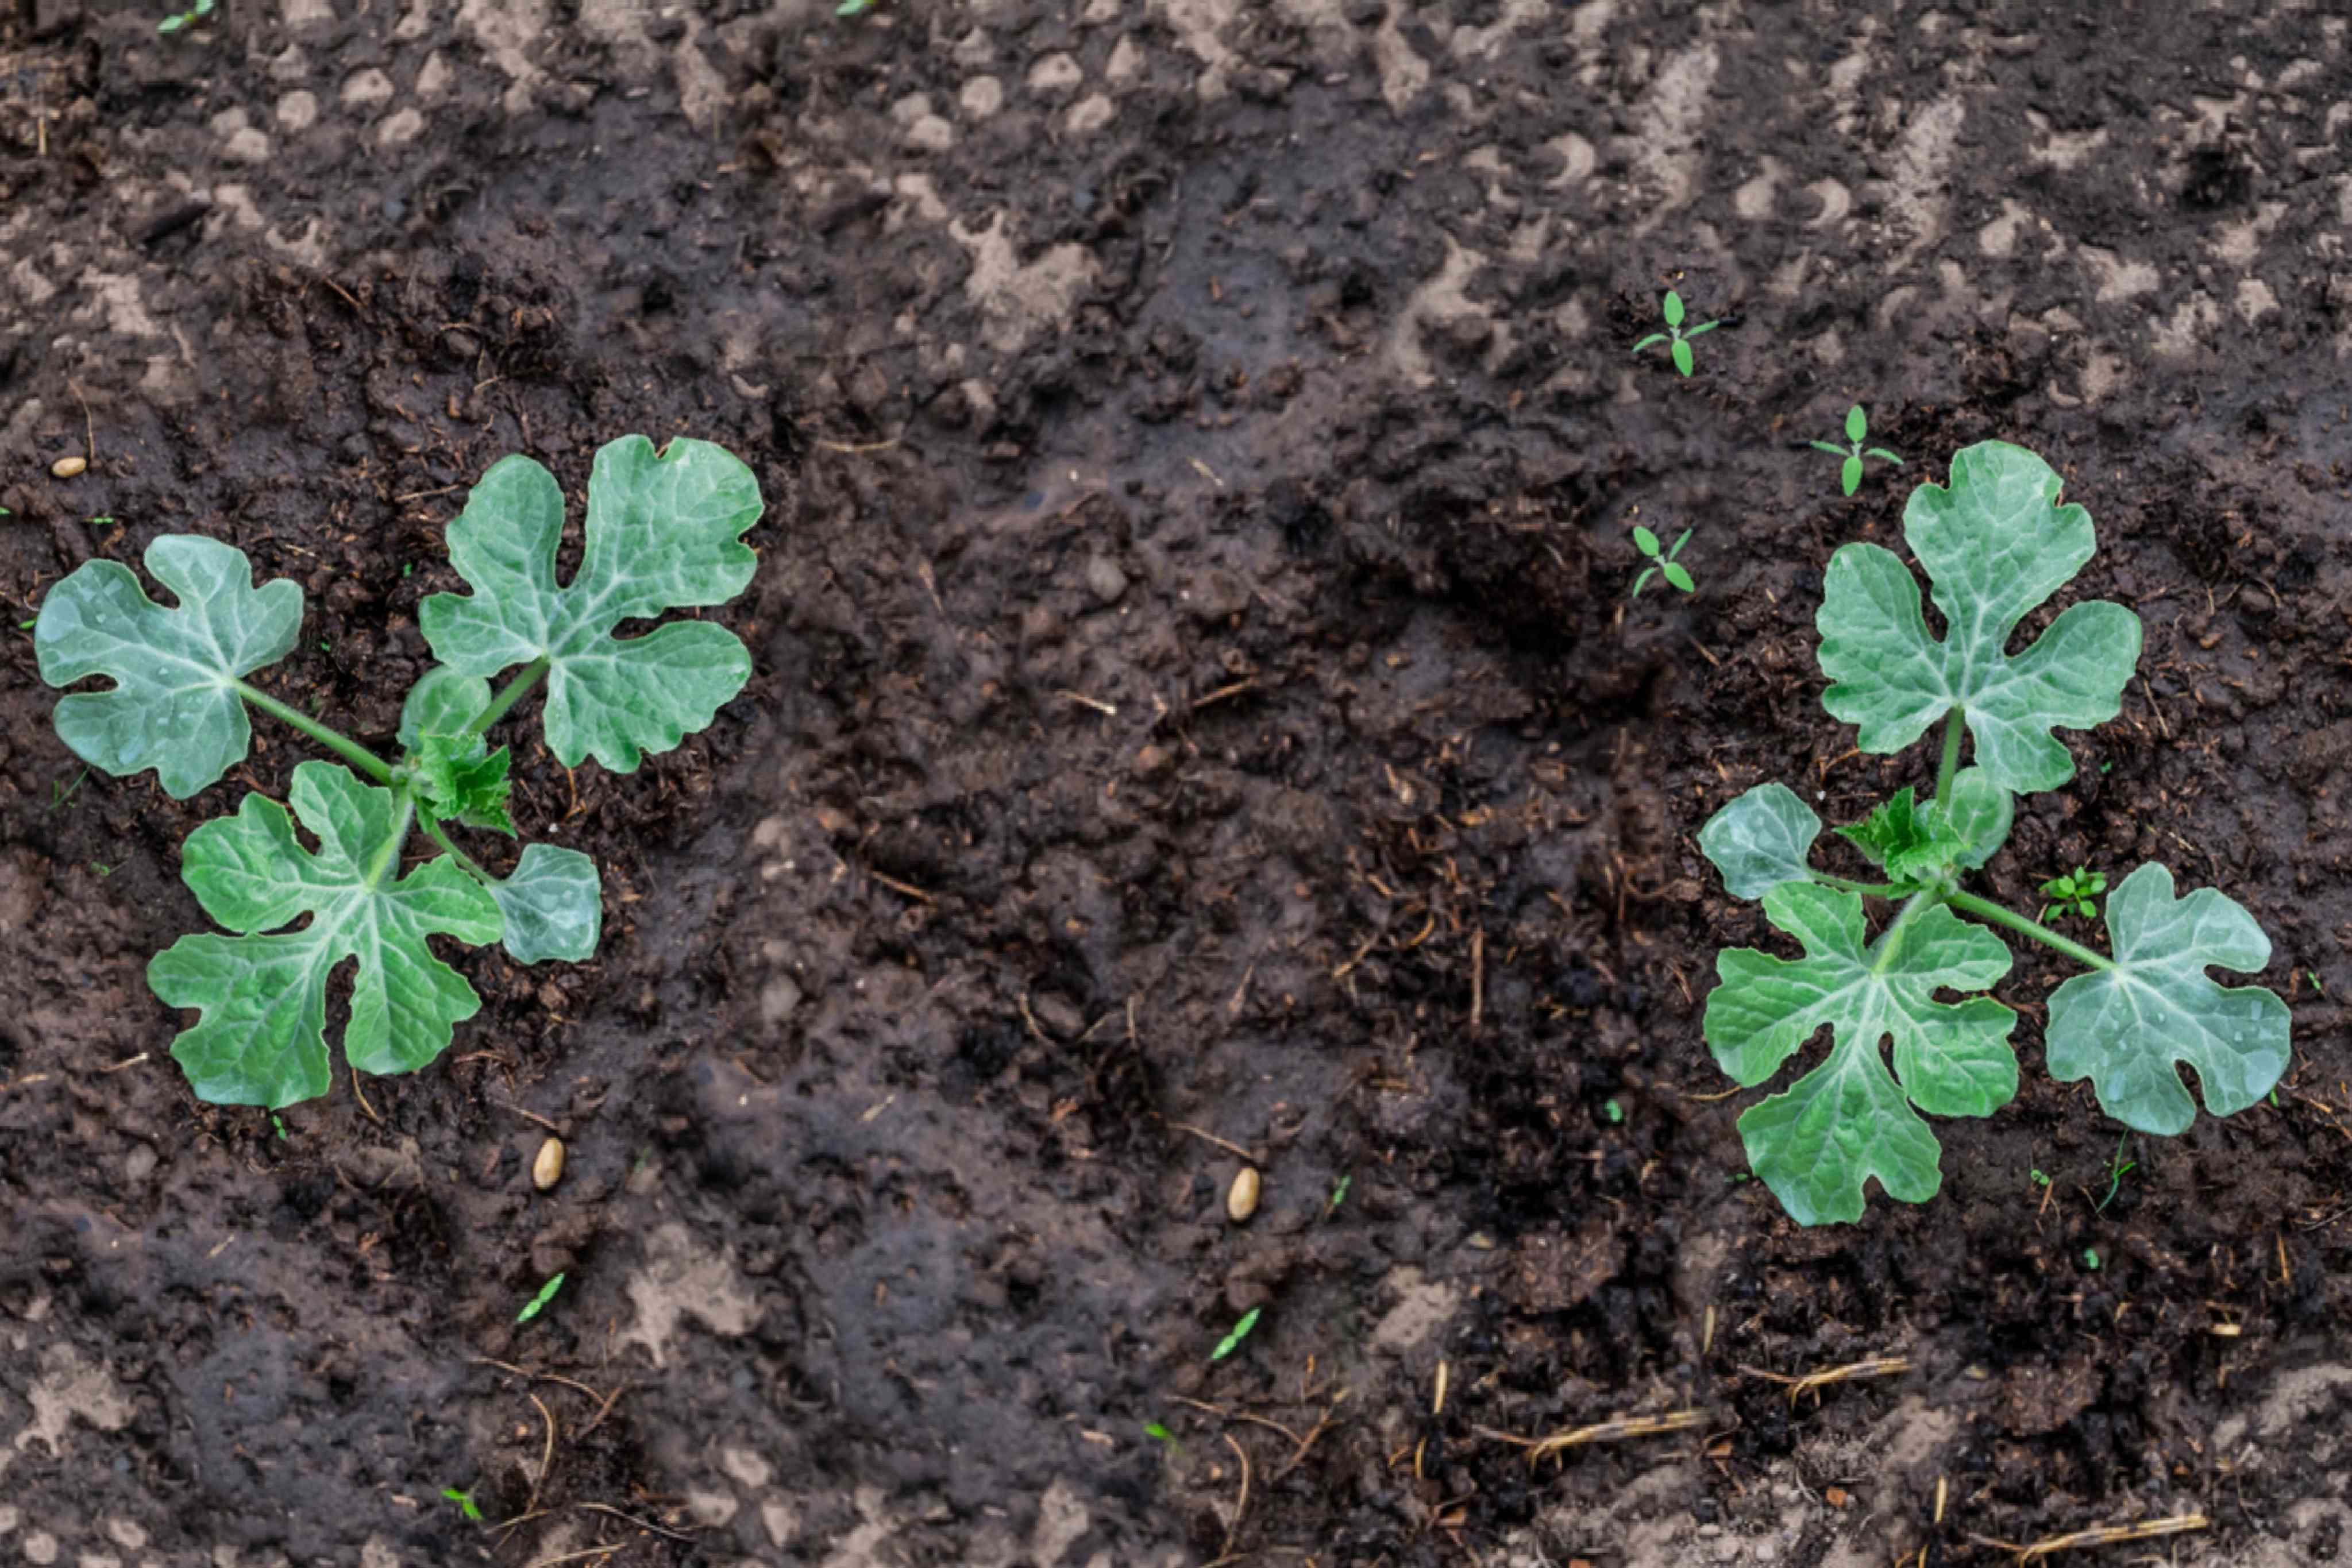 Watermelon plant sprouts growing from ground